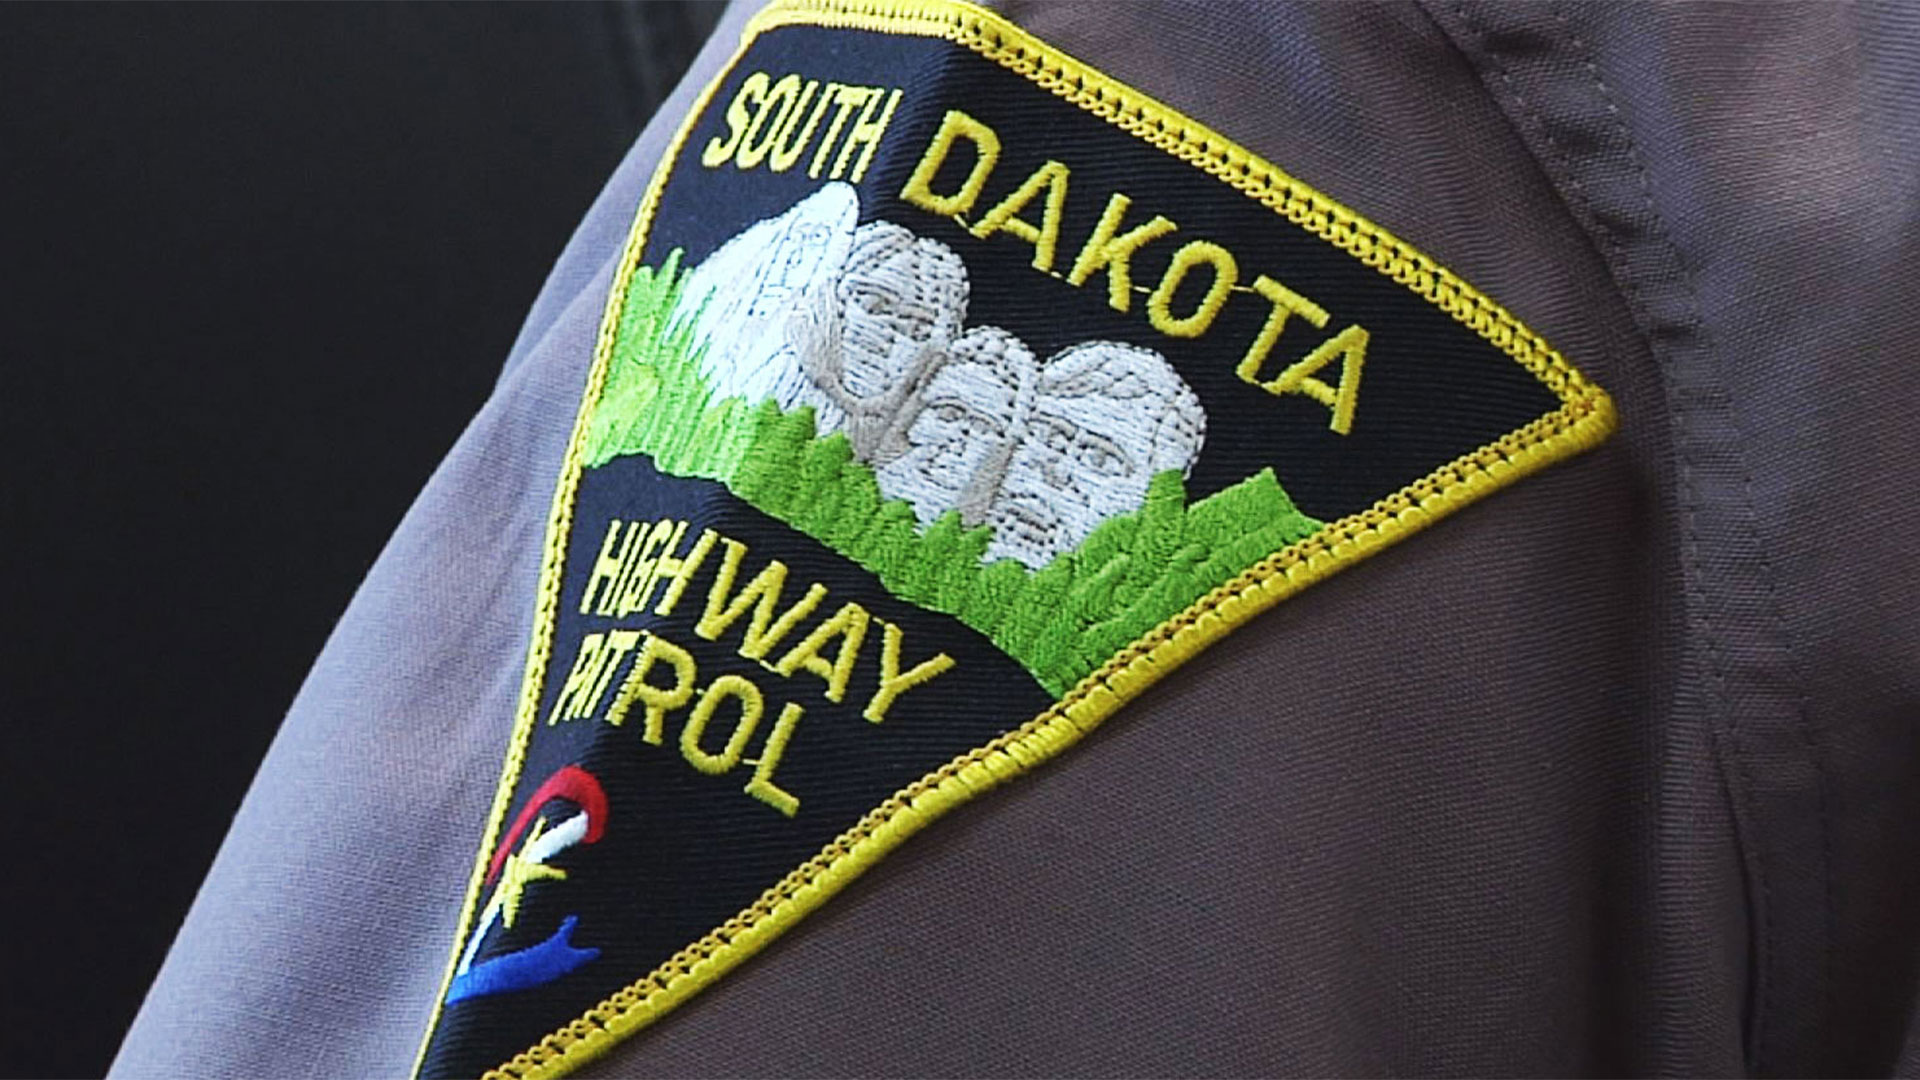 KELO South Dakota Highway Patrol trooper